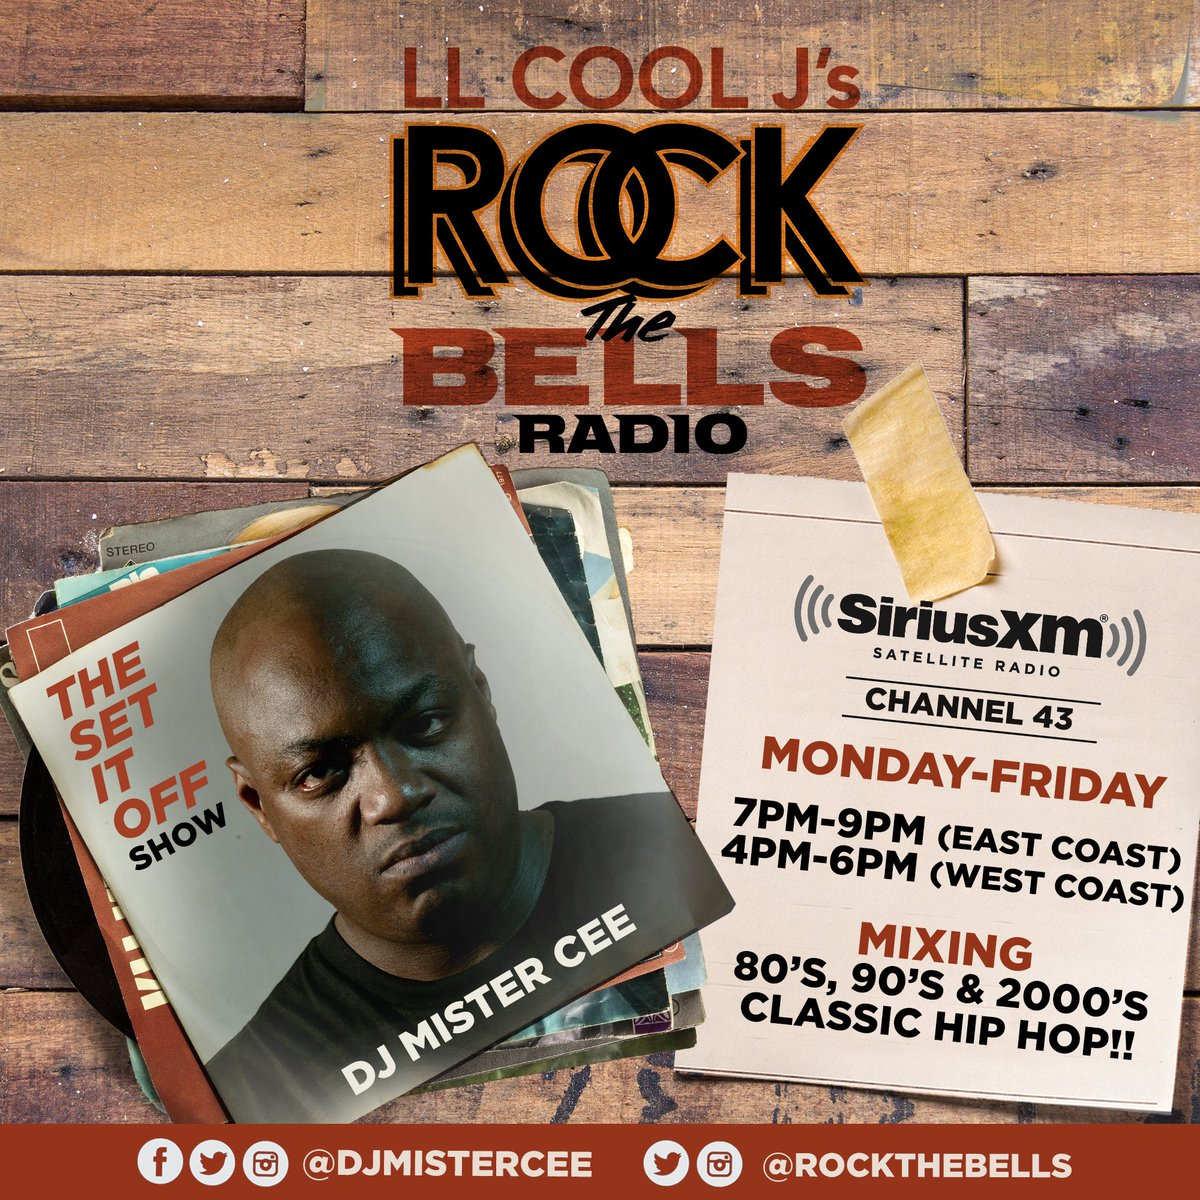 2DAY!!! THE SET IT OFF SHOW WIT @djmistercee AIRING MON-FRI 7PM-9PM(EAST COAST) 4PM-6PM (WEST COAST) ON LL COOL J @llcoolj ROCK THE BELLS RADIO @rockthebells ON SIRIUS XM CHANNEL 43!!! @siriusxm PLAYING CLASSIC/TIMELESS HIP HOP TUNES FROM THE 80's 90's & 2000's